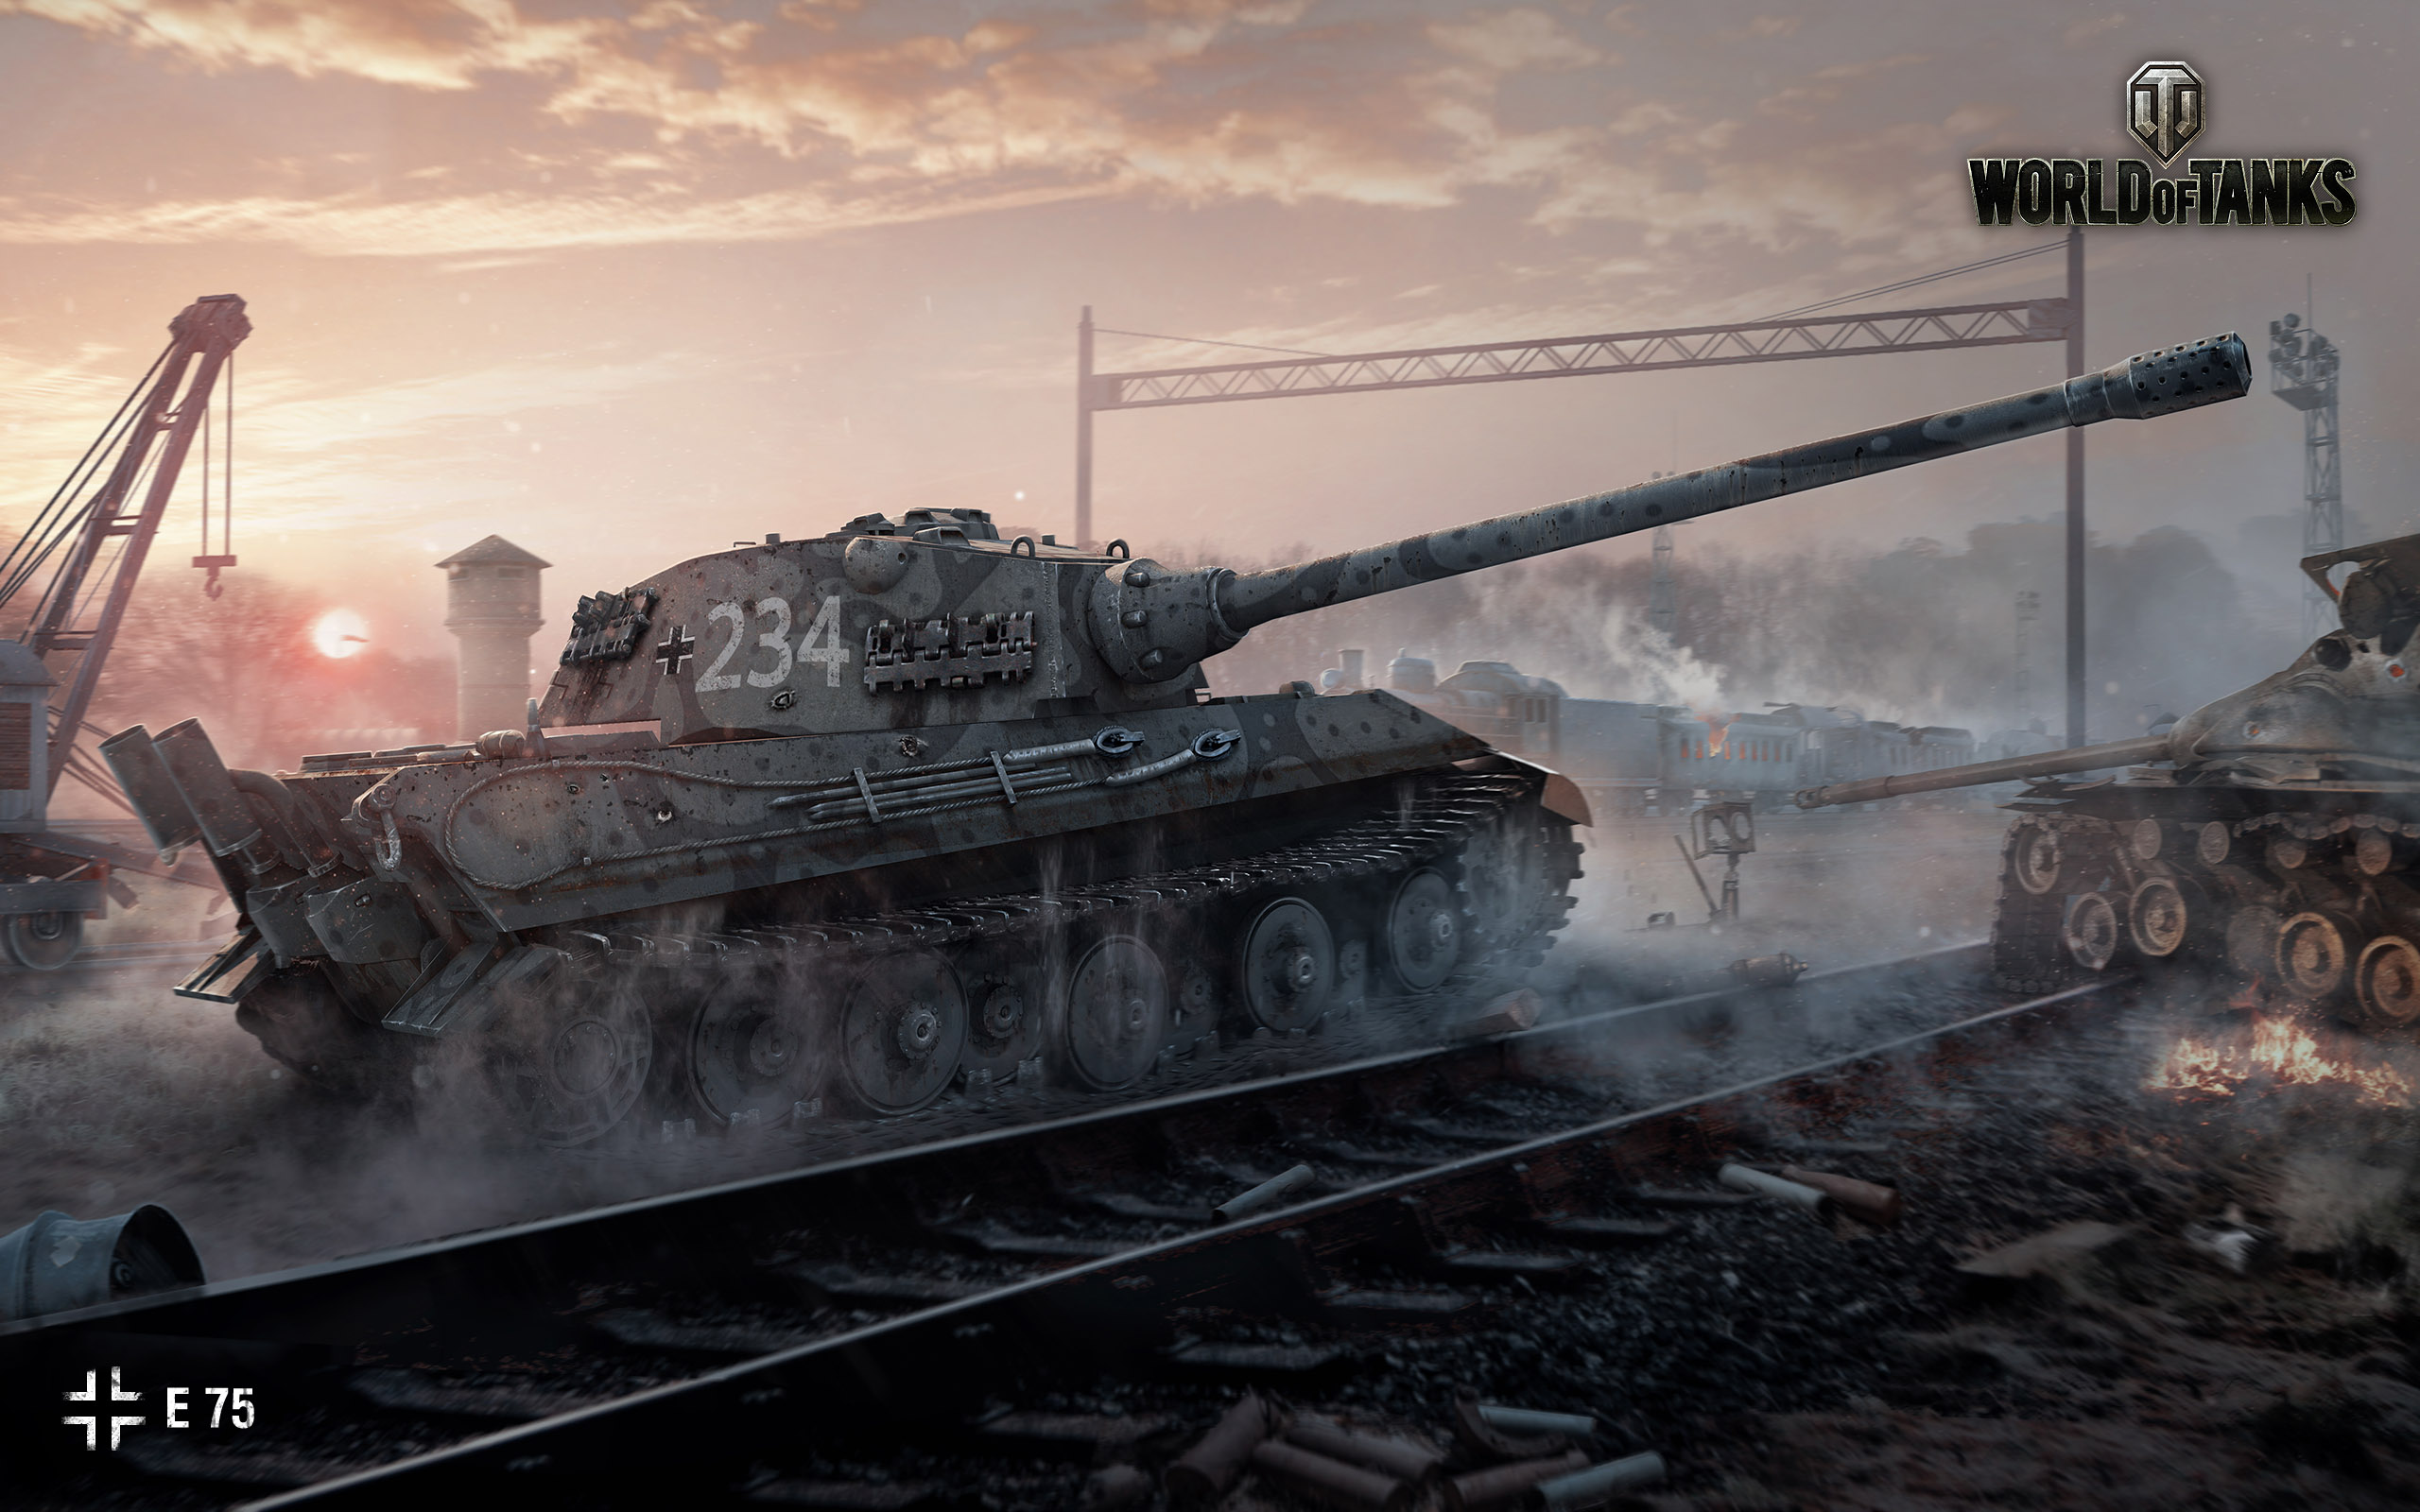 HD Wallpapers E75 World of Tanks